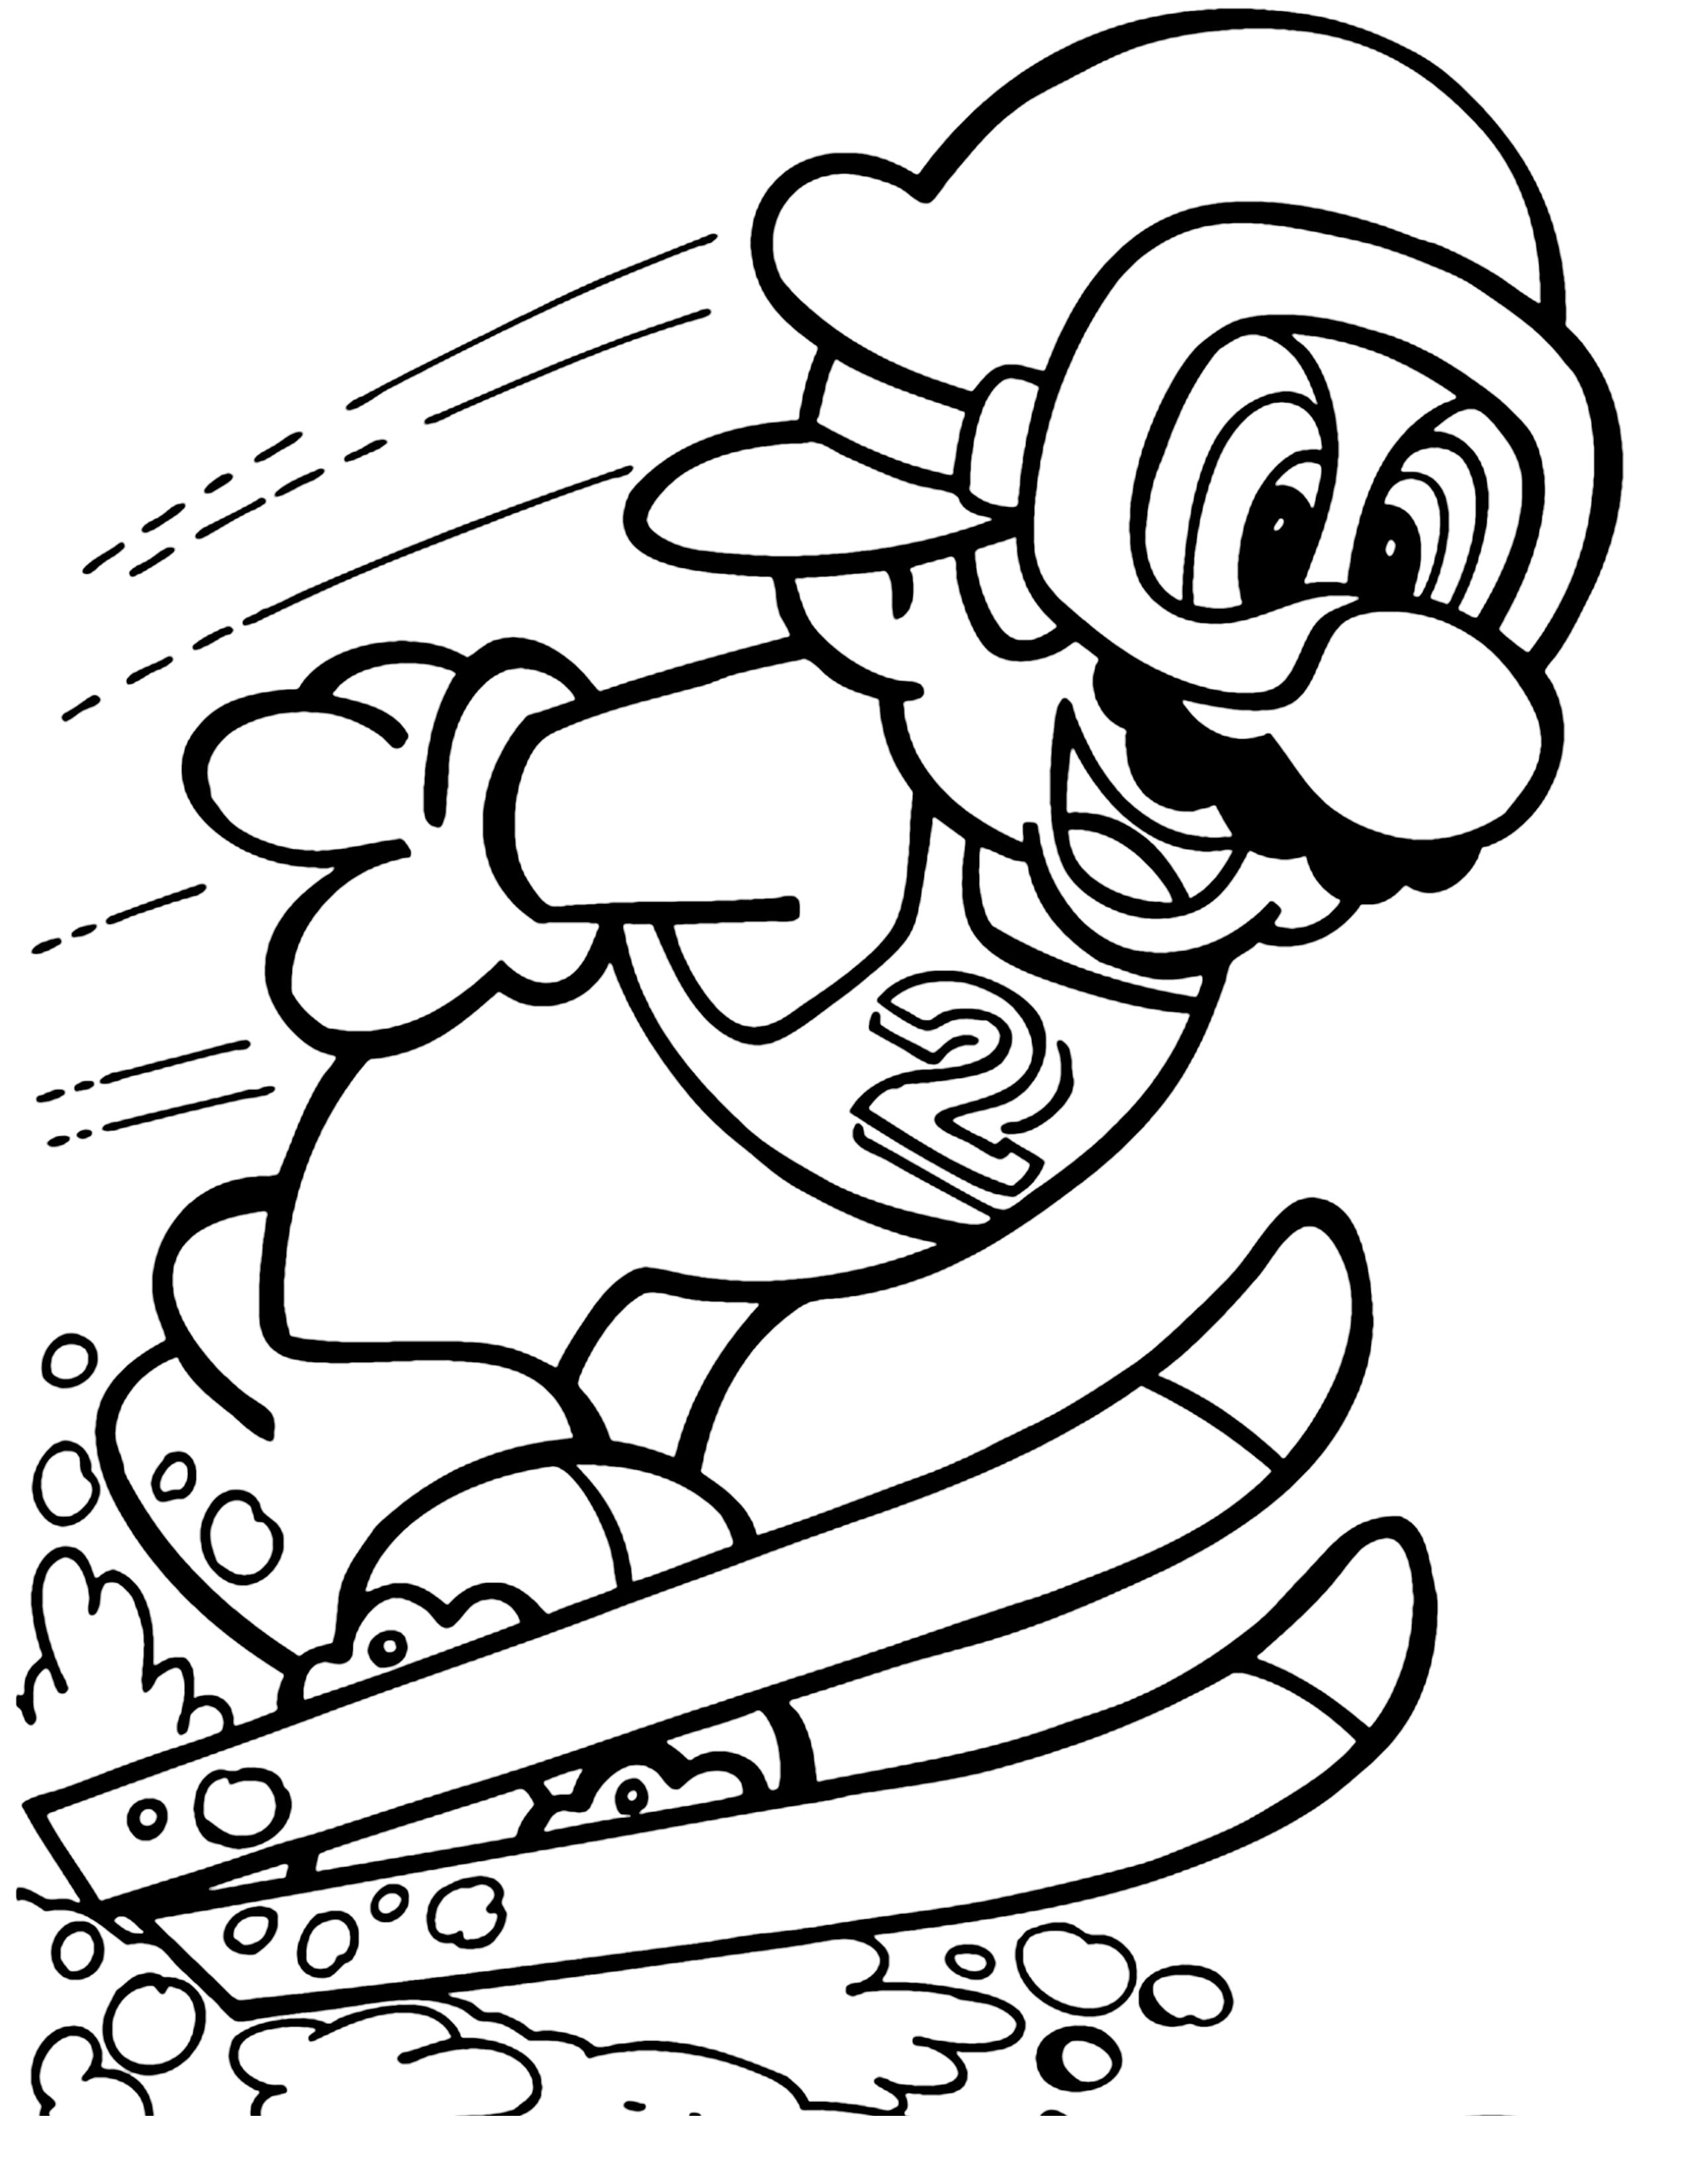 40 Mario Coloring Pages For Kids Mario Coloring Pages Coloring Pages For Kids Coloring Pages [ 3300 x 2550 Pixel ]